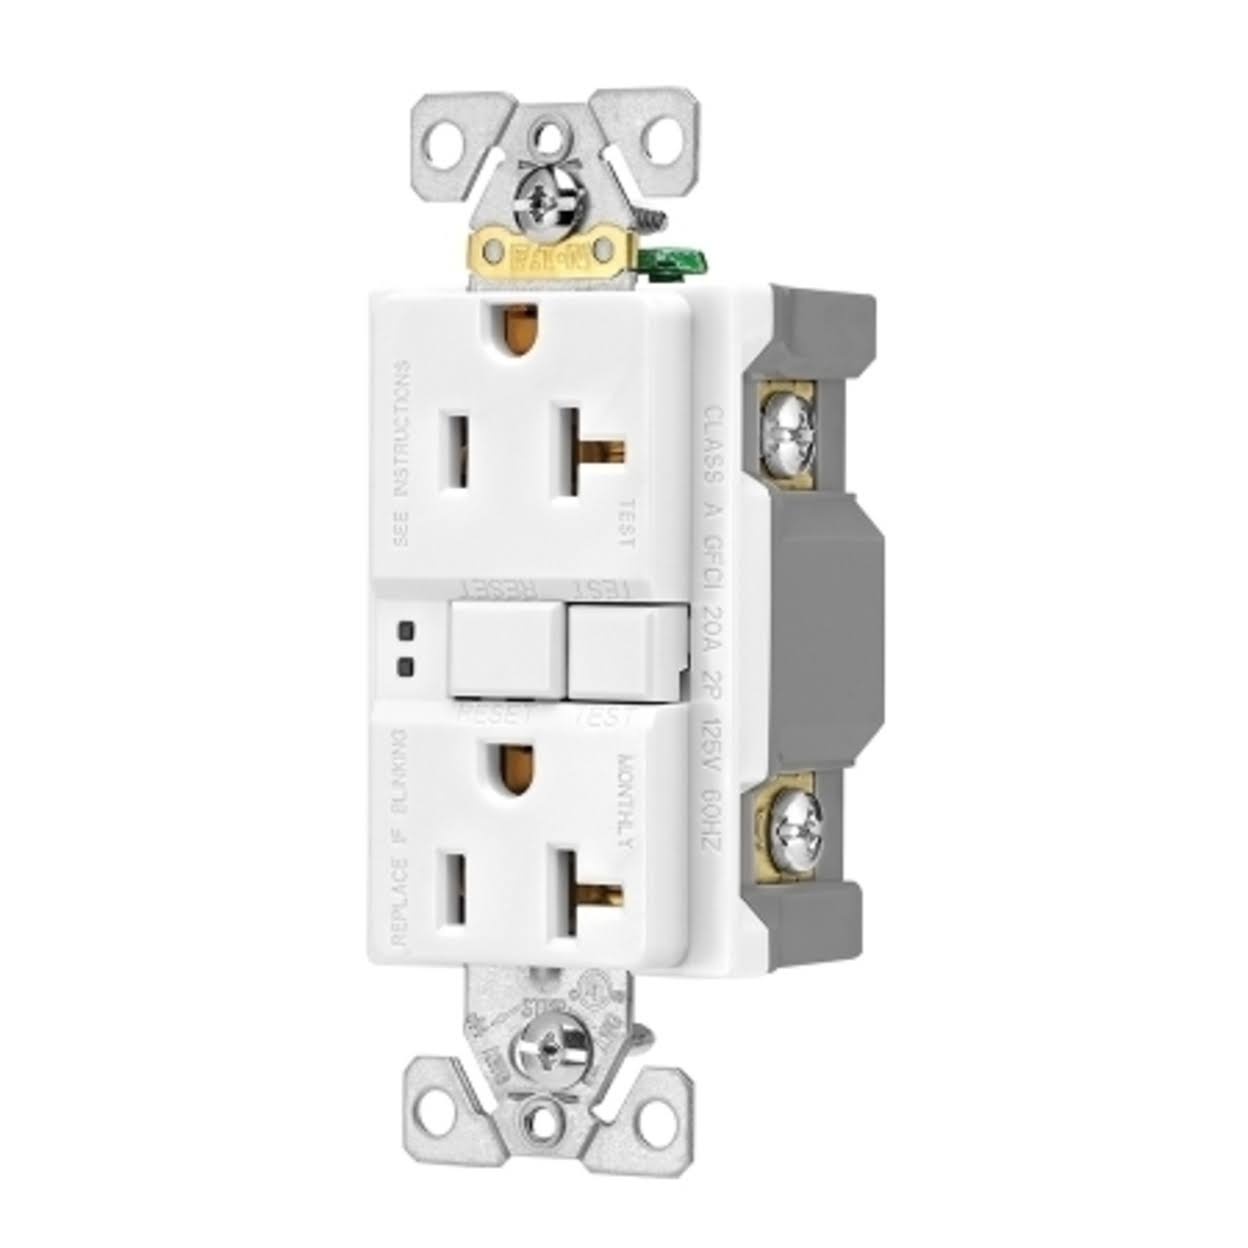 Eaton GFCI Self-Test Duplex Receptacle with Standard Wallplate - White, 20A, 125V